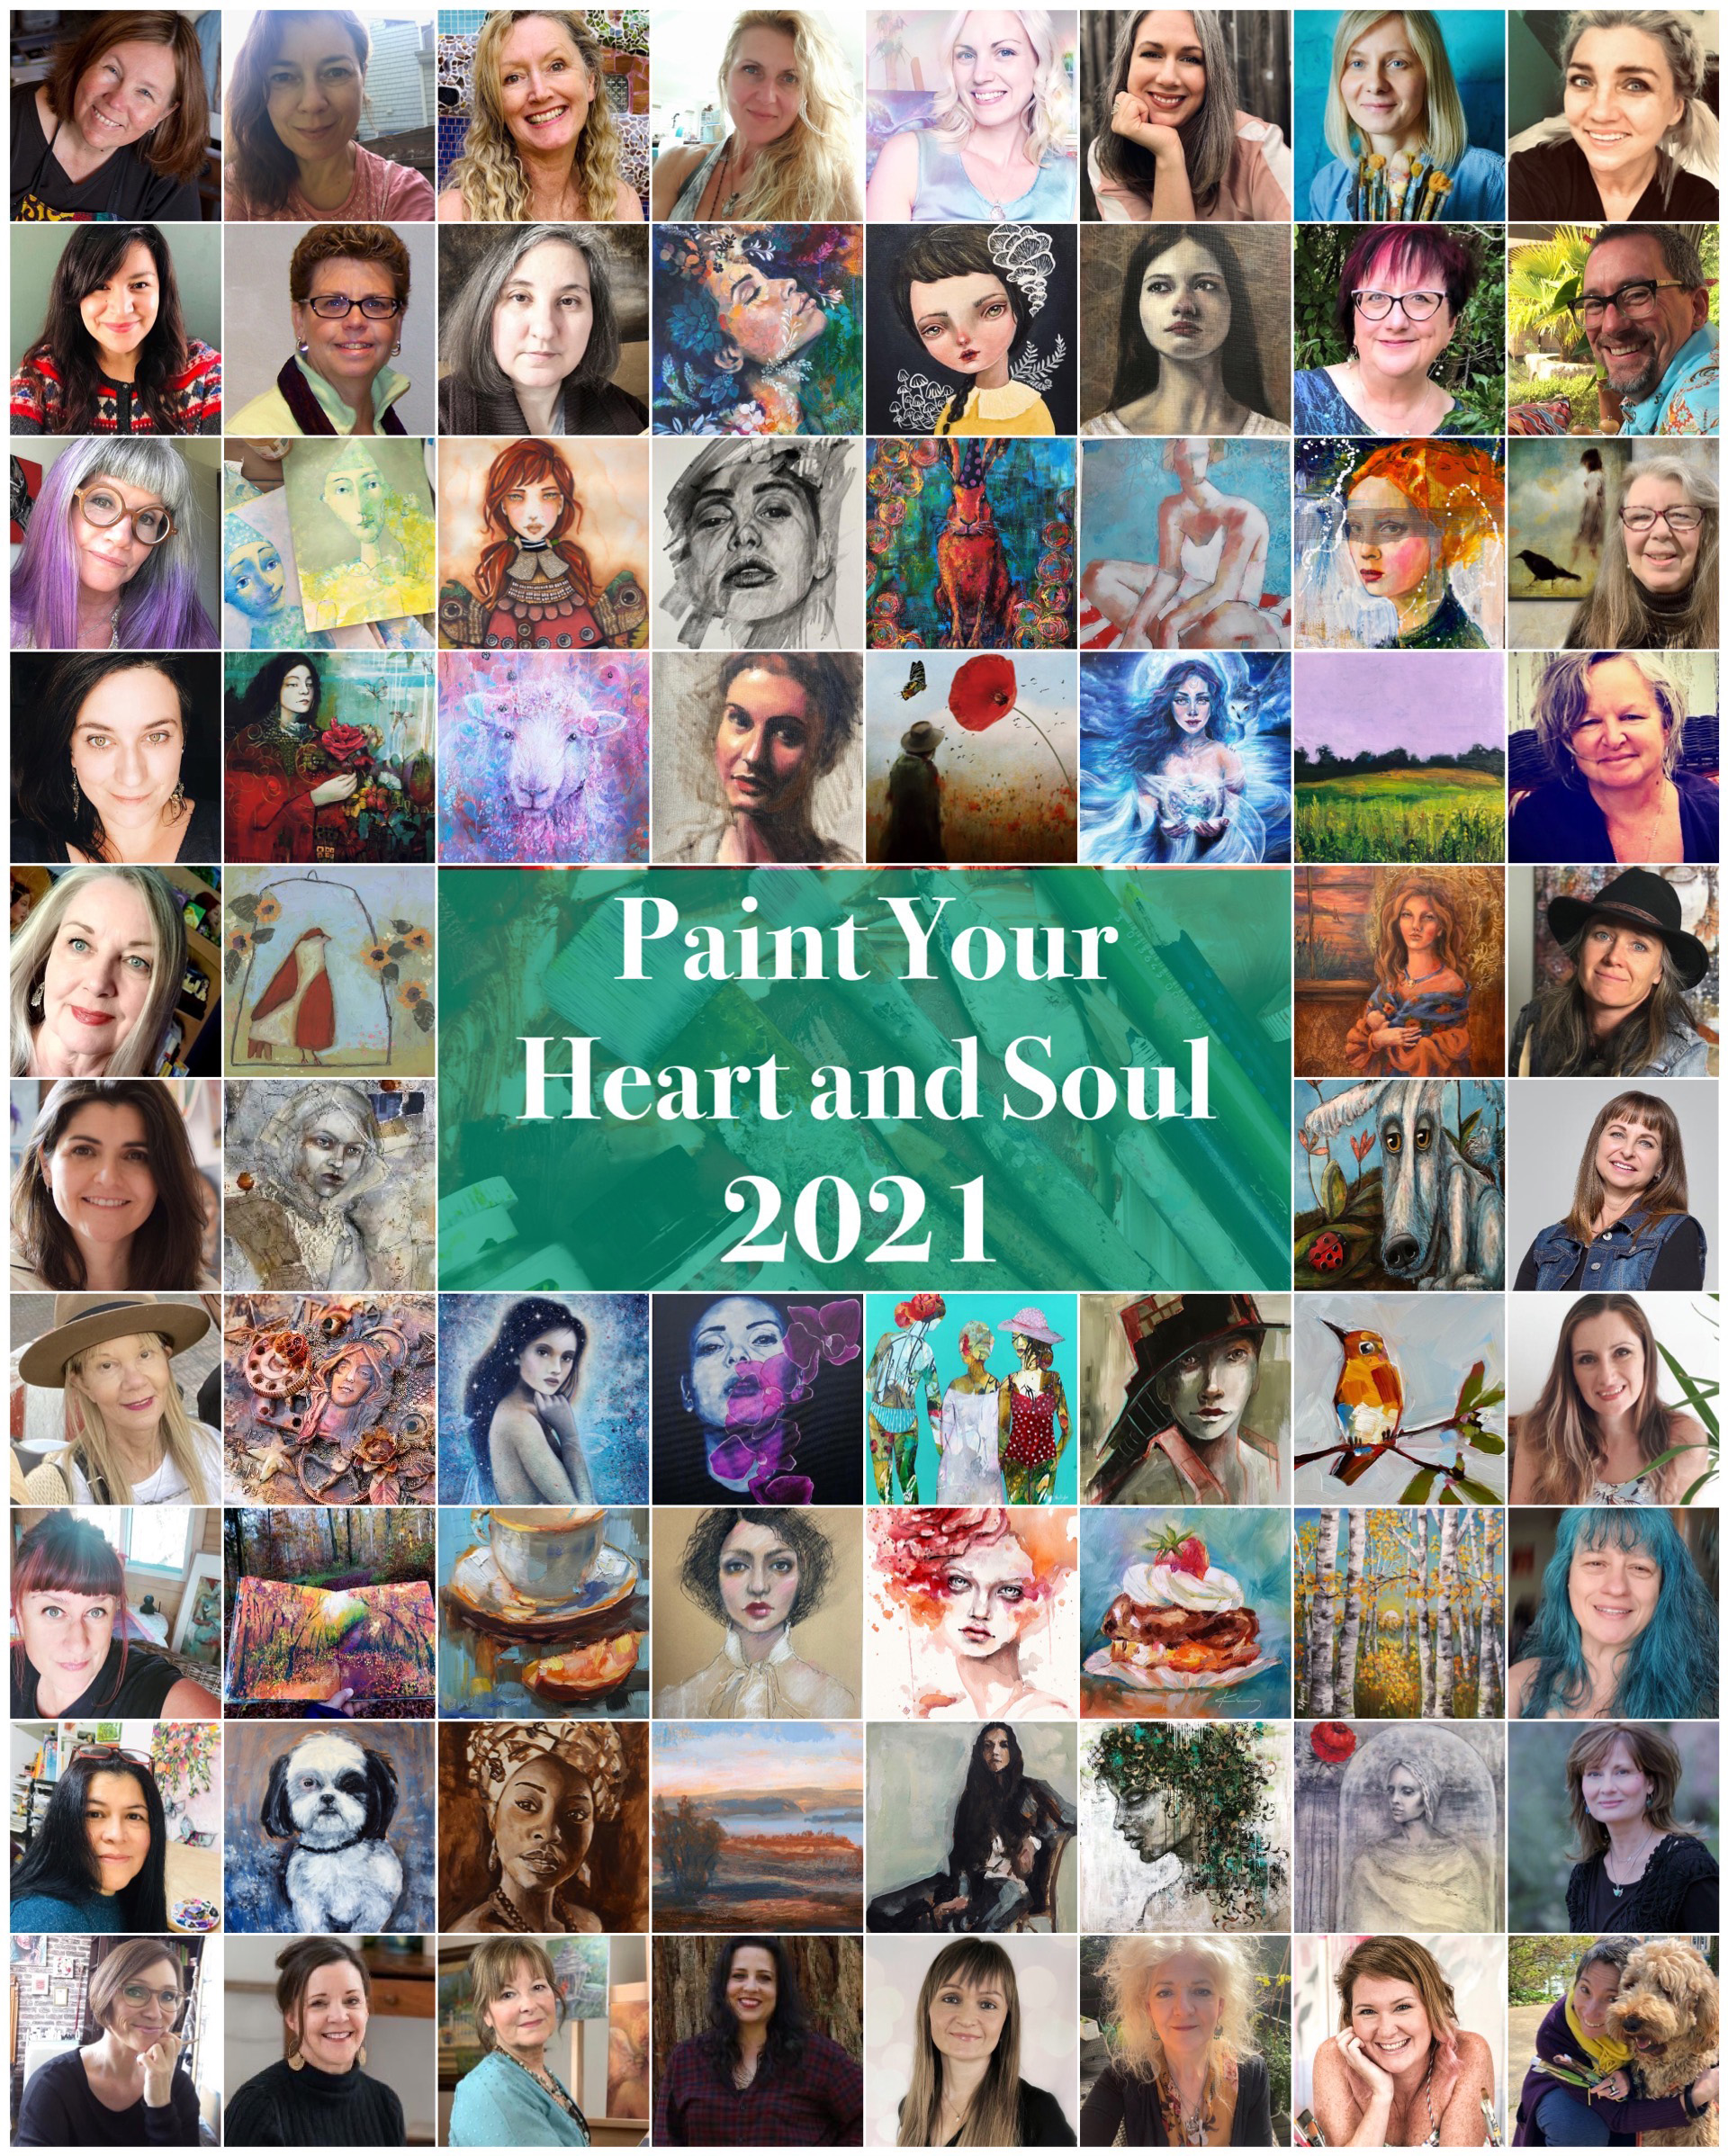 Paint Your Heart and Soul 2021